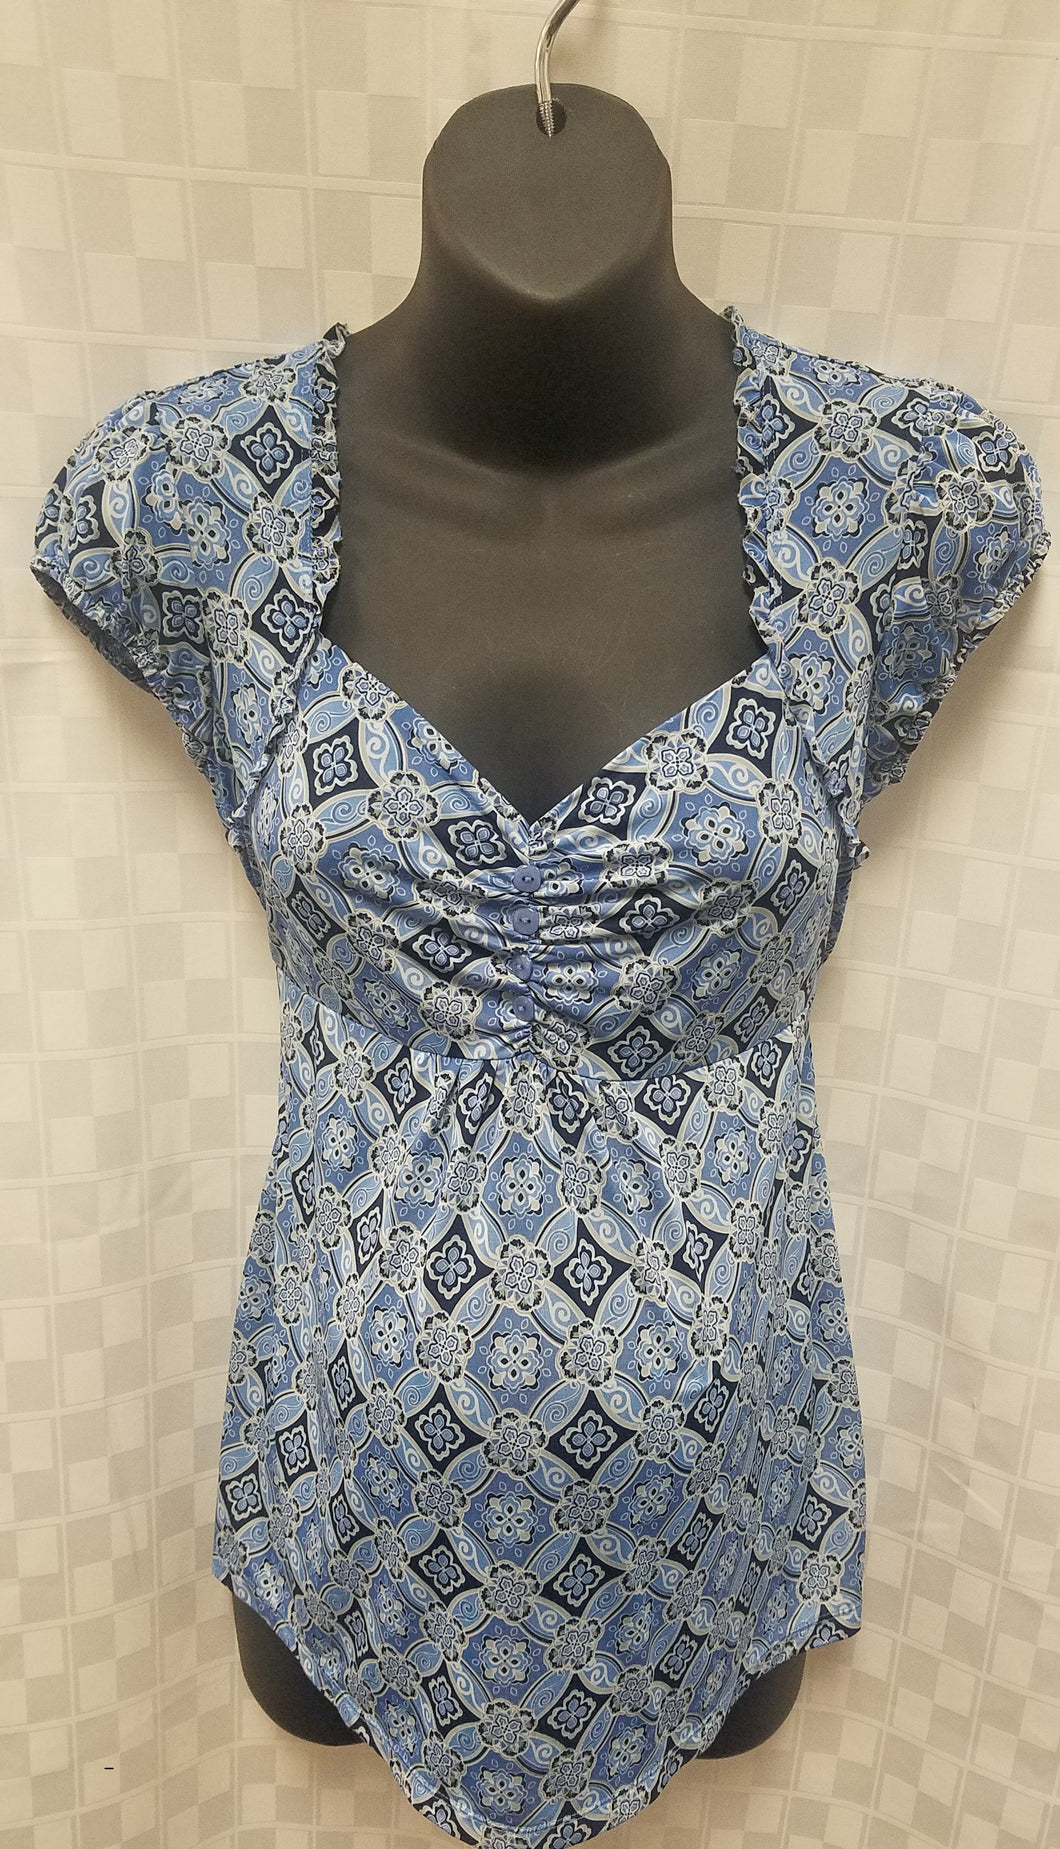 Small Blue Multi-Print Cap Sleeve Maternity Top